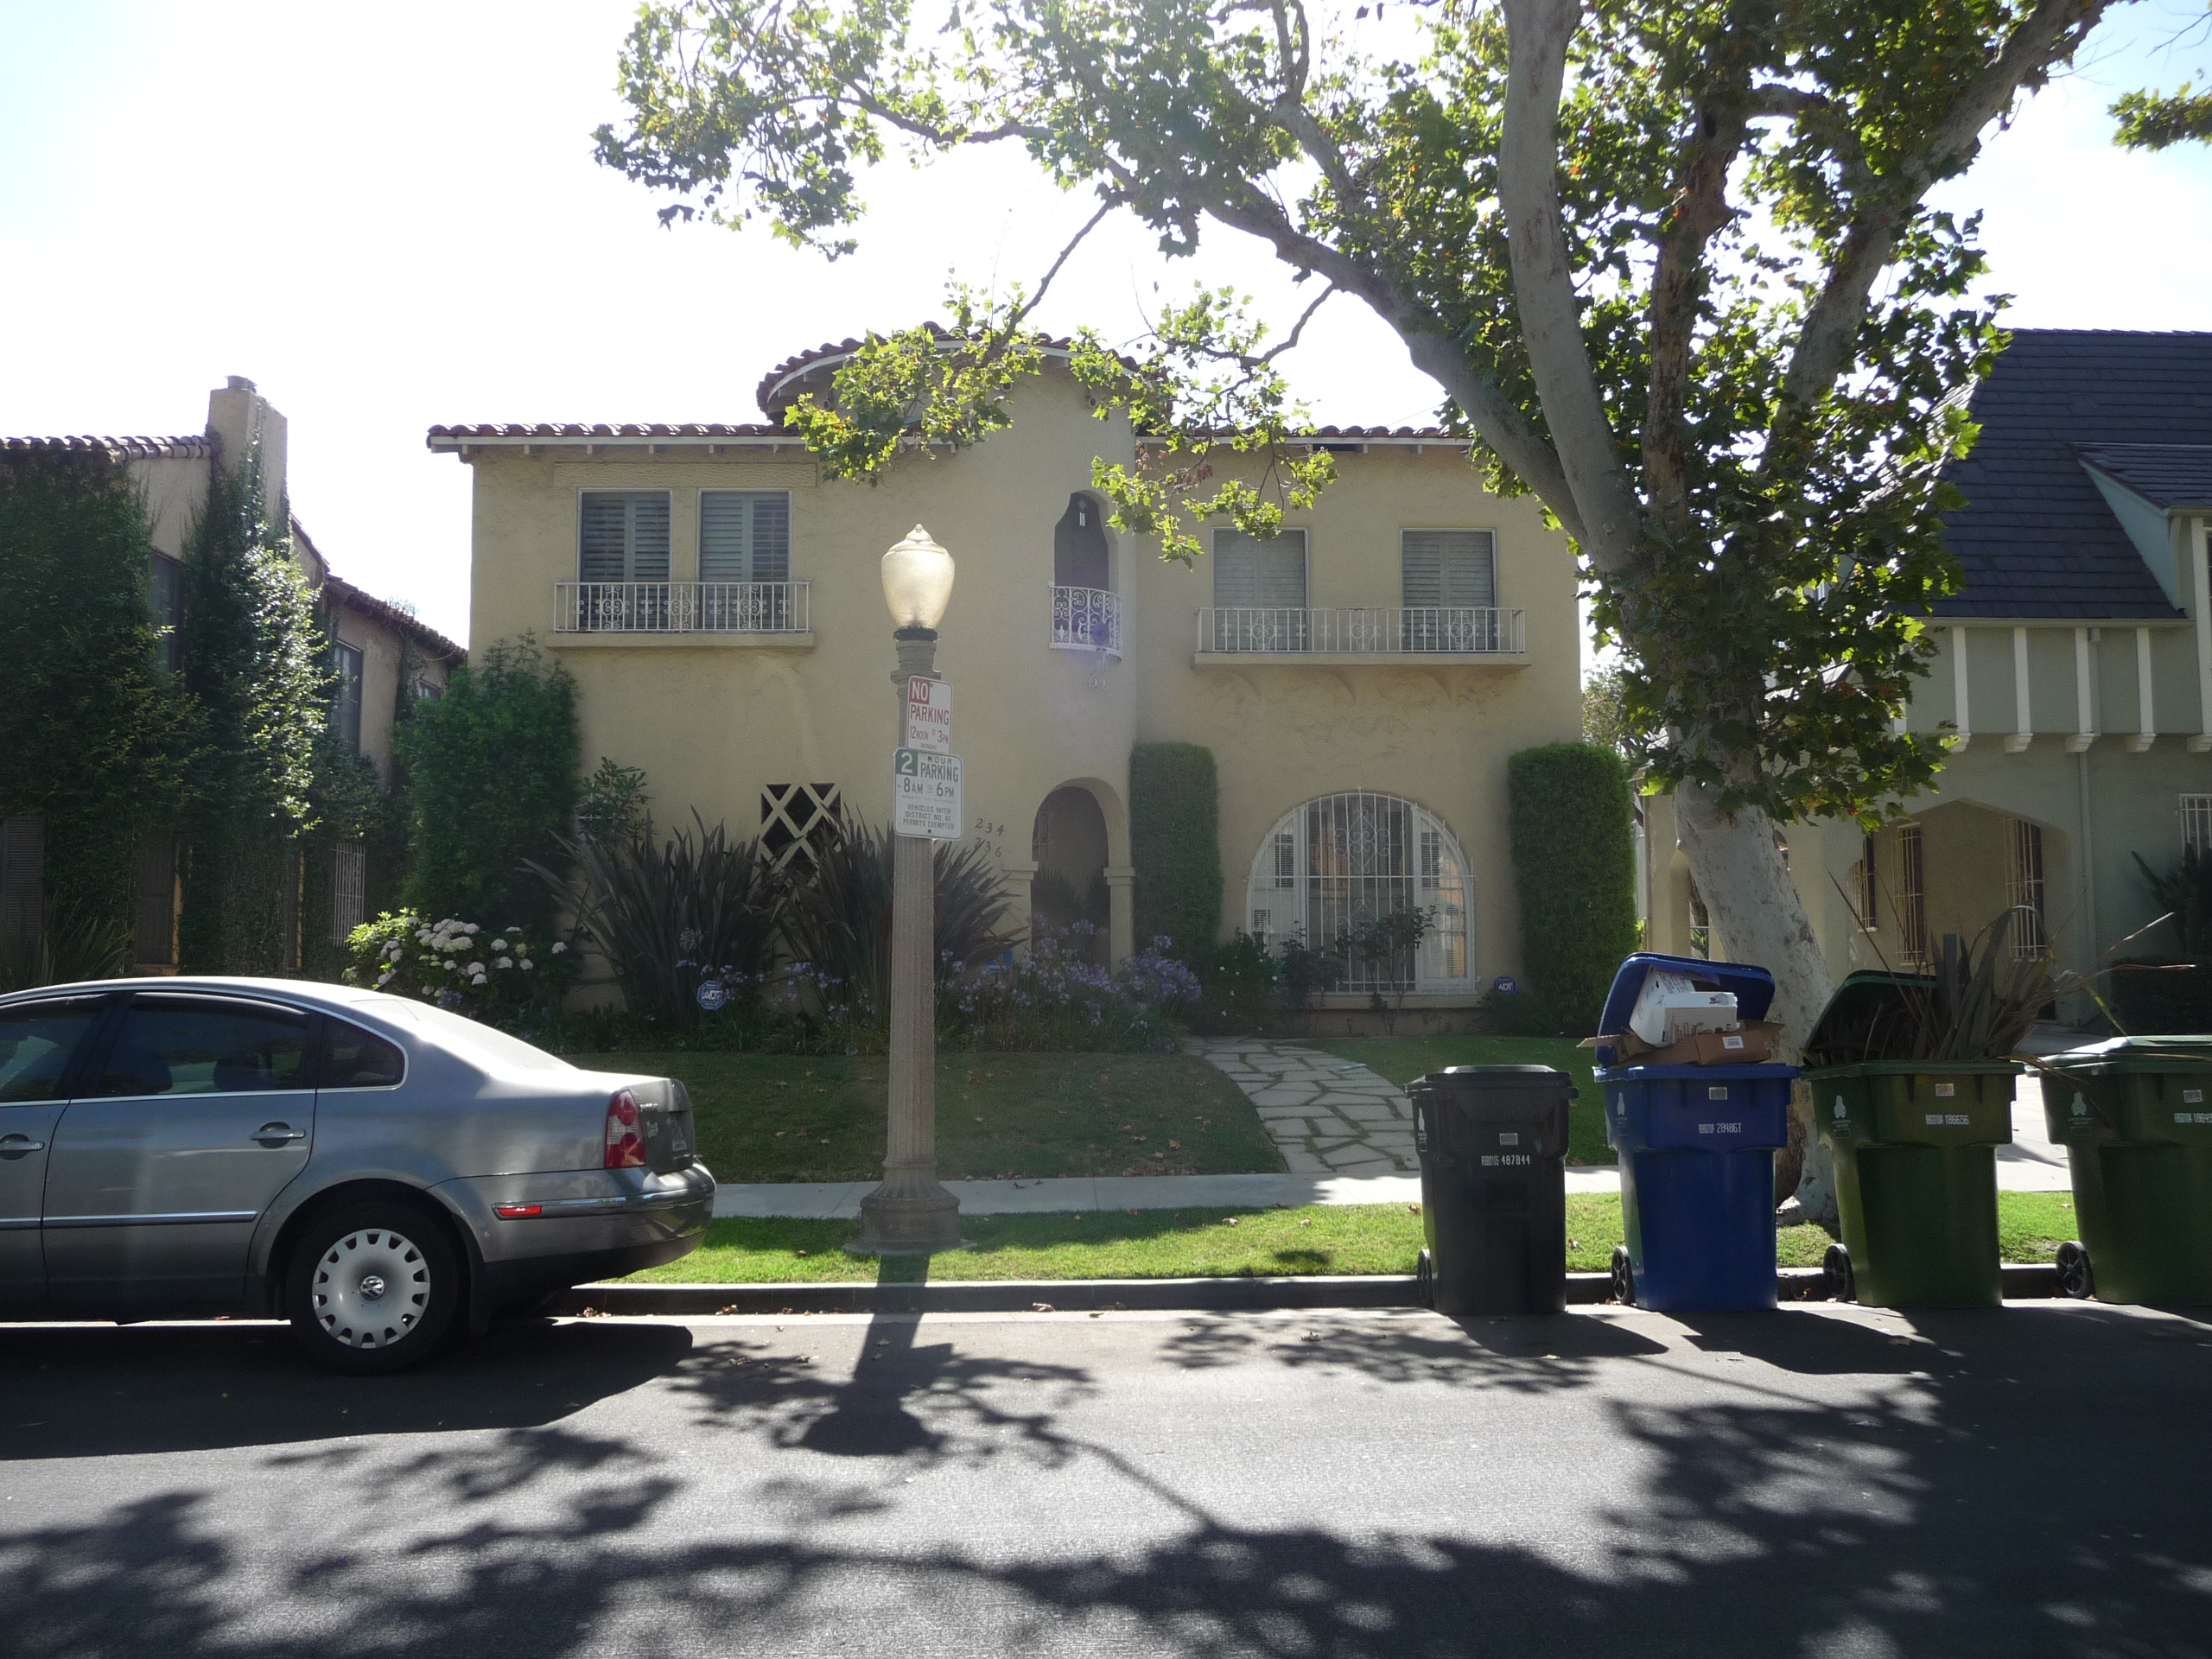 234 S MANSFIELD AVE - PHOTO